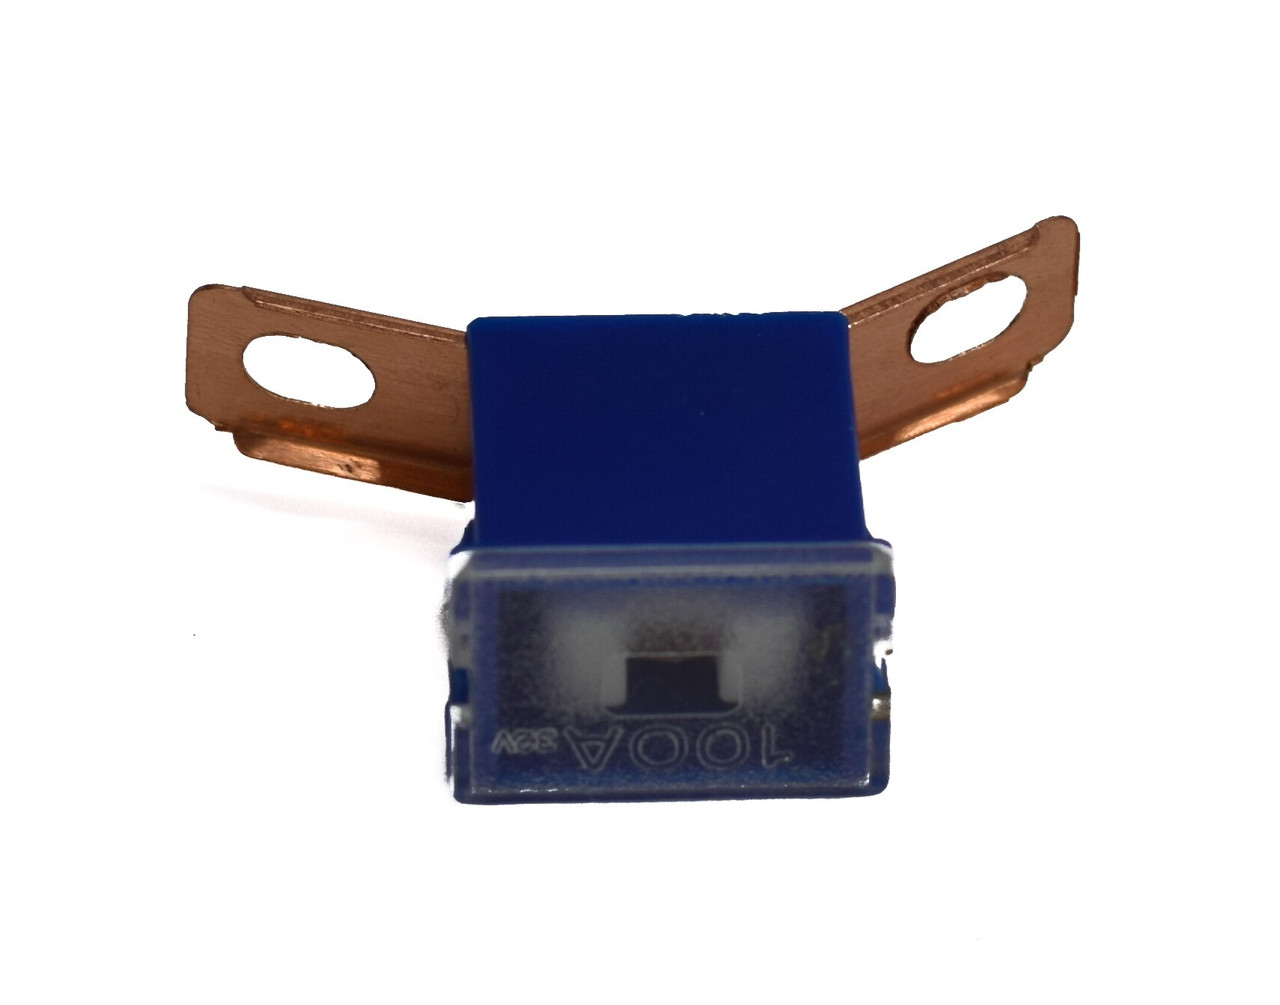 Raion Power Replacement RBC7 100A Fuse For APC SU1400X106